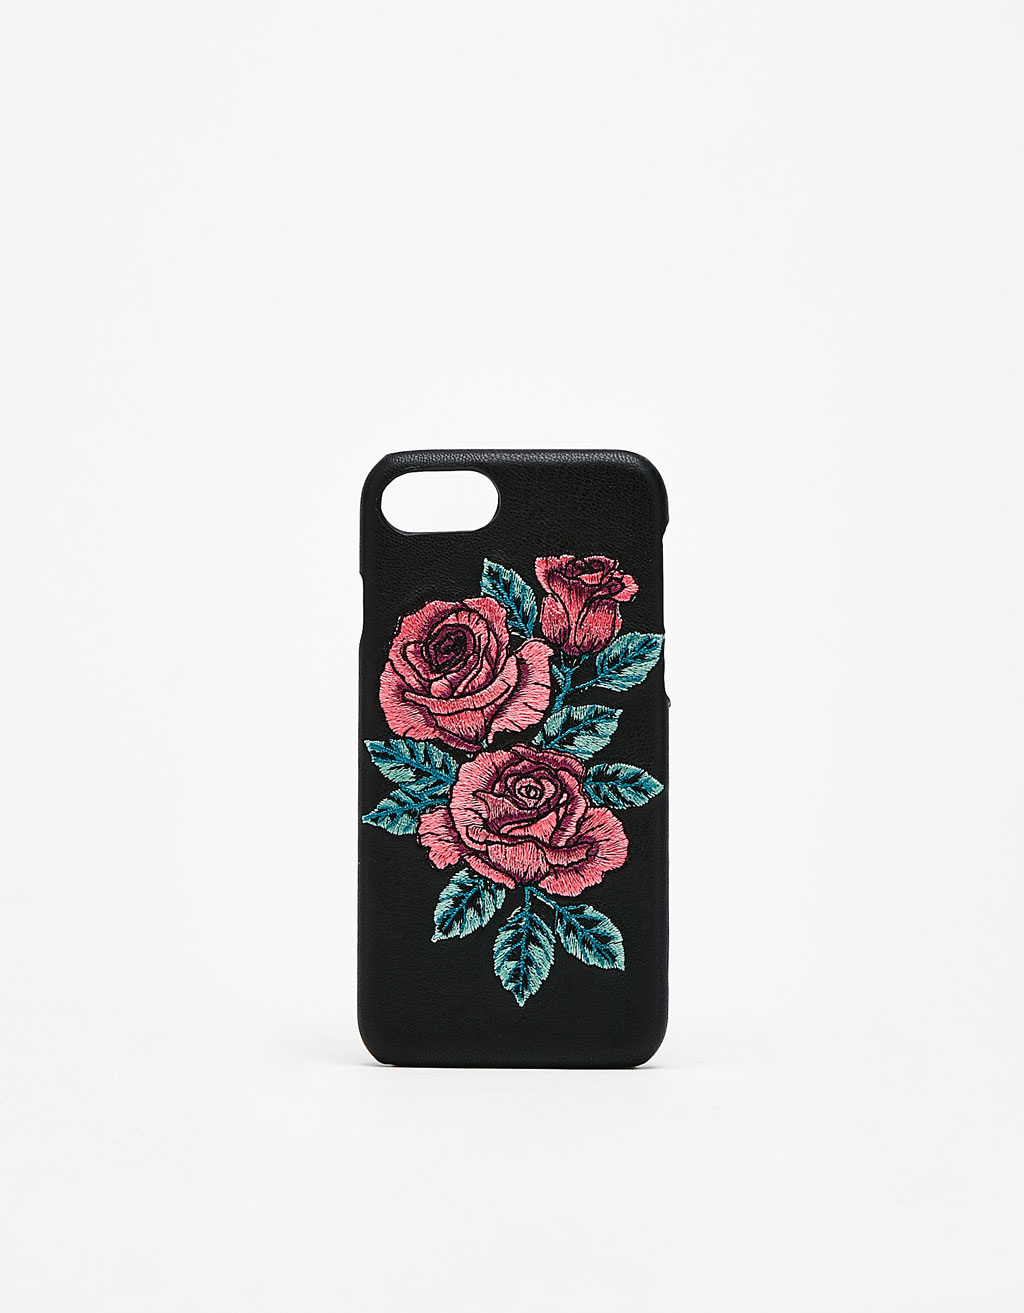 Carcasa con bordado de rosas iPhone 6/6s/7/8